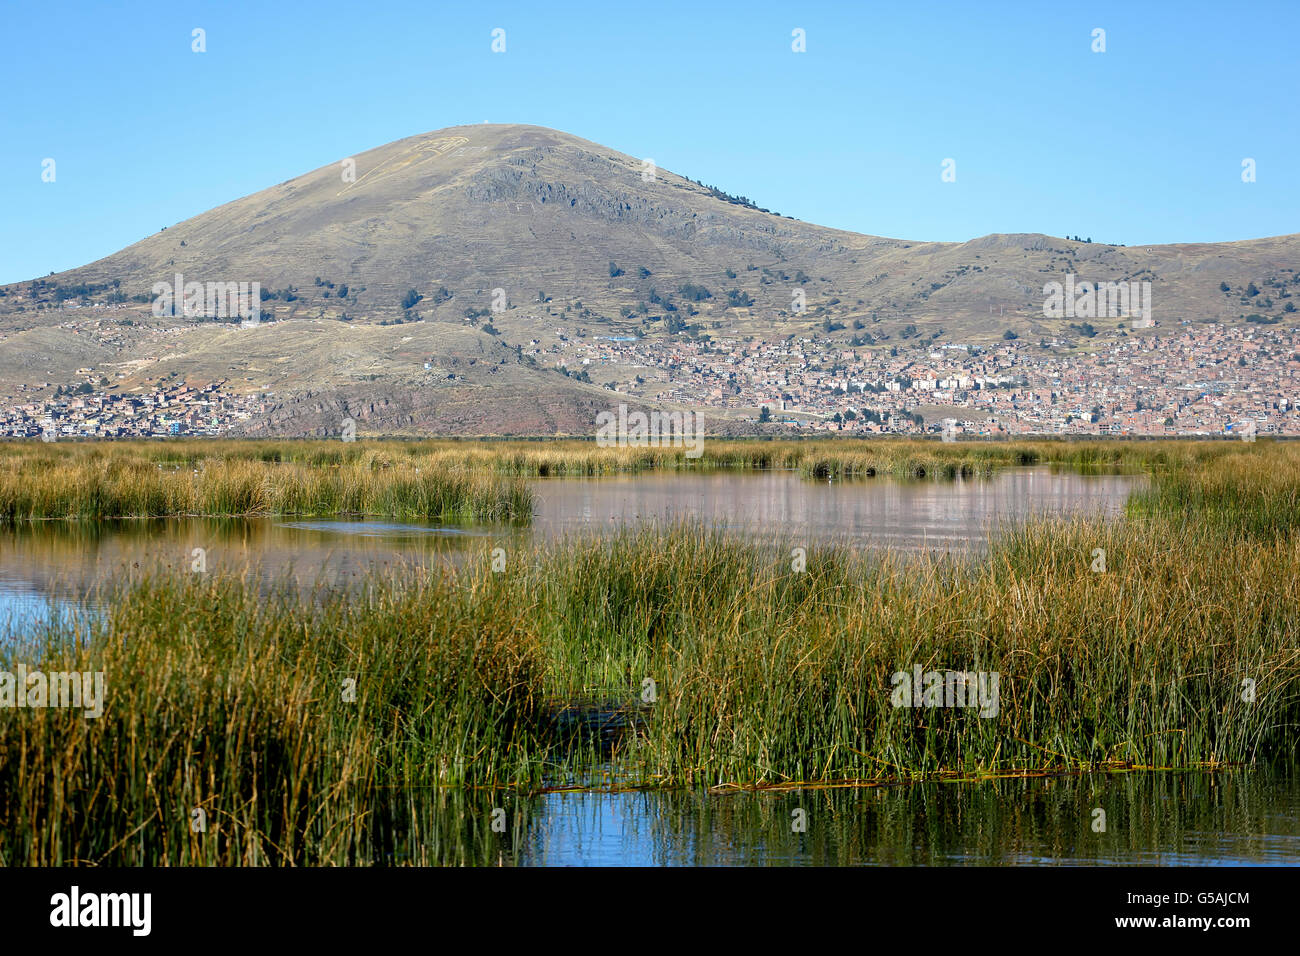 Totora reed fields, City of Puno in background, Puno, Peru - Stock Image